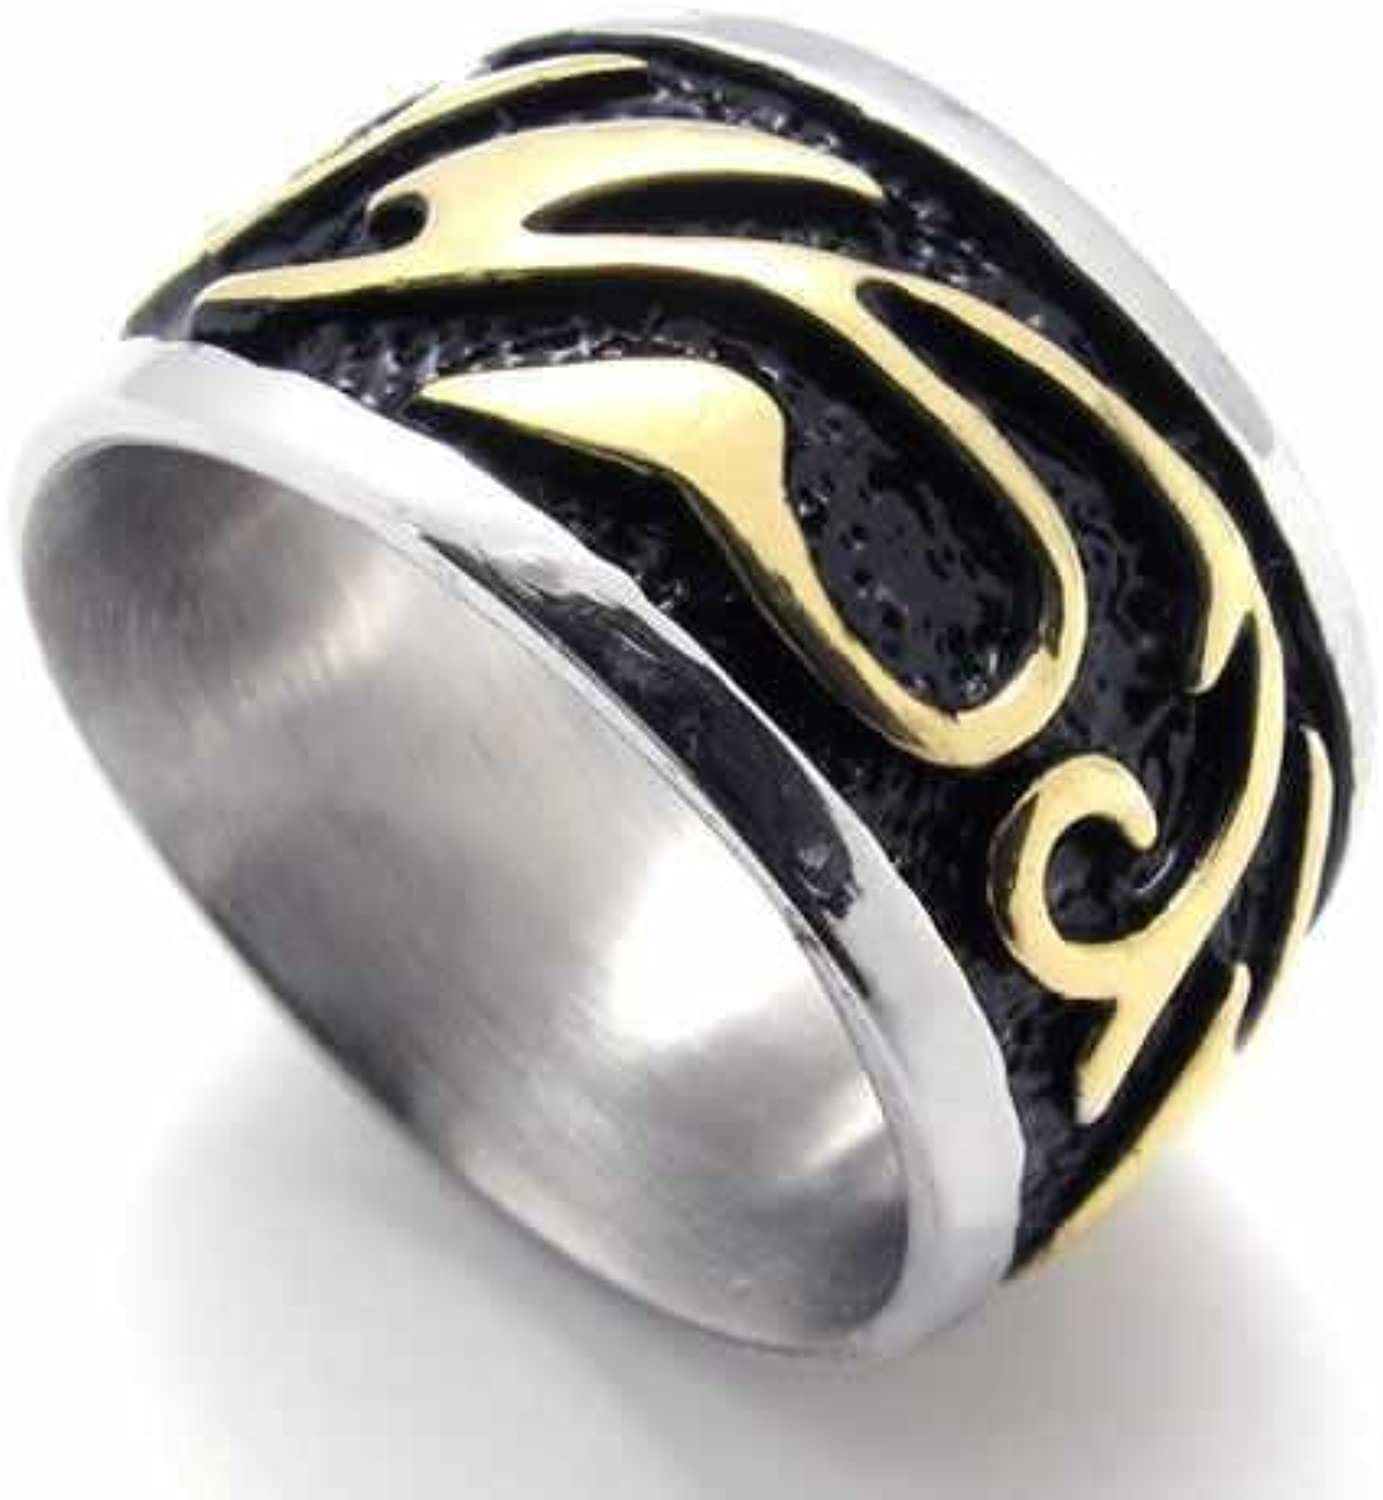 K-Design Stainless Steel 316L Rings Black Circle Stamp gold Flower Pattern Men Rings Wedding Exaggerated Rings 20301